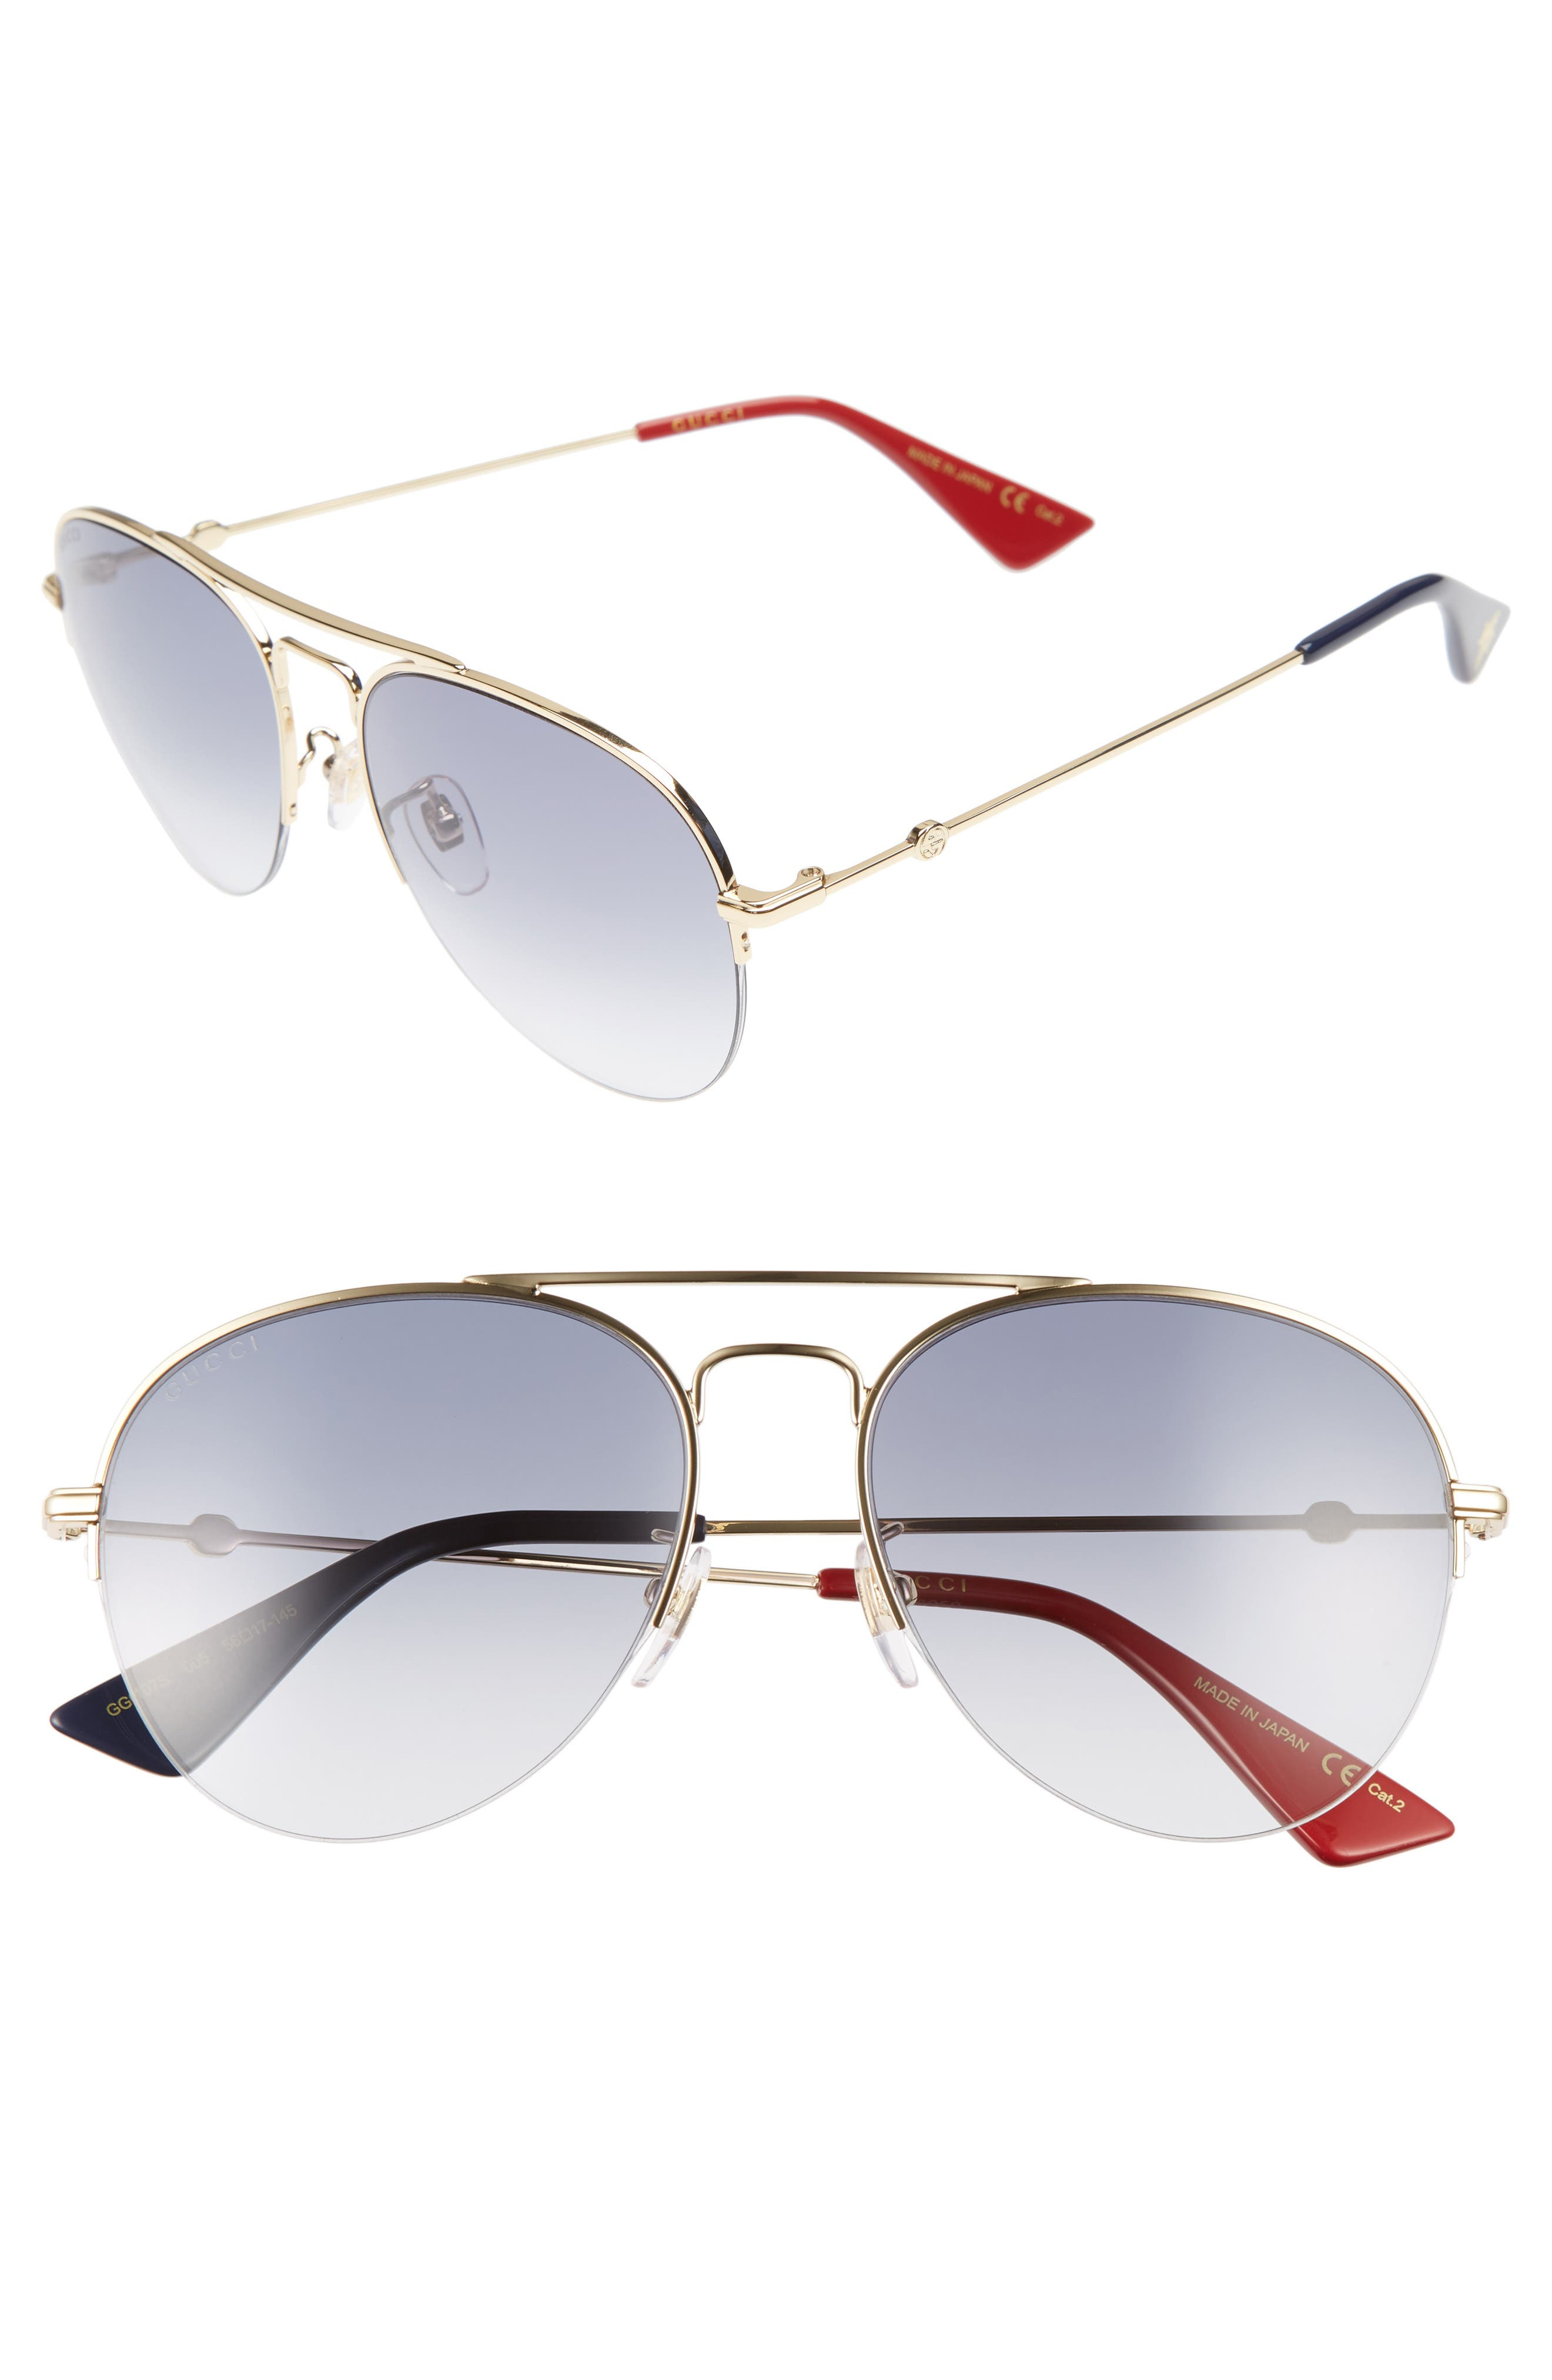 Alternate Image 1 Selected - Gucci 56mm Aviator Sunglasses